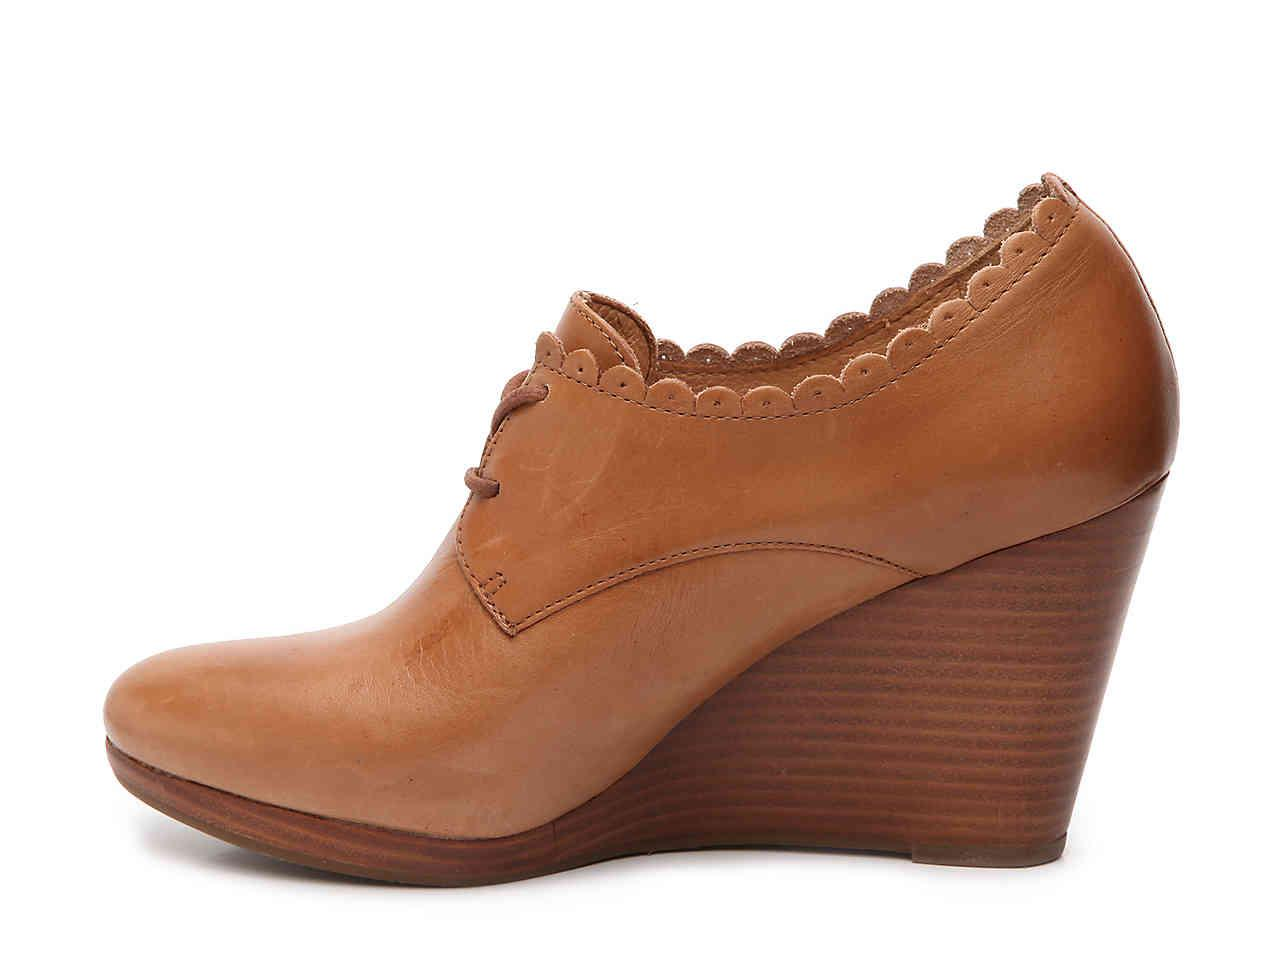 e6f76dddcd09 Lyst - Jack Rogers Olivia Wedge Bootie in Brown